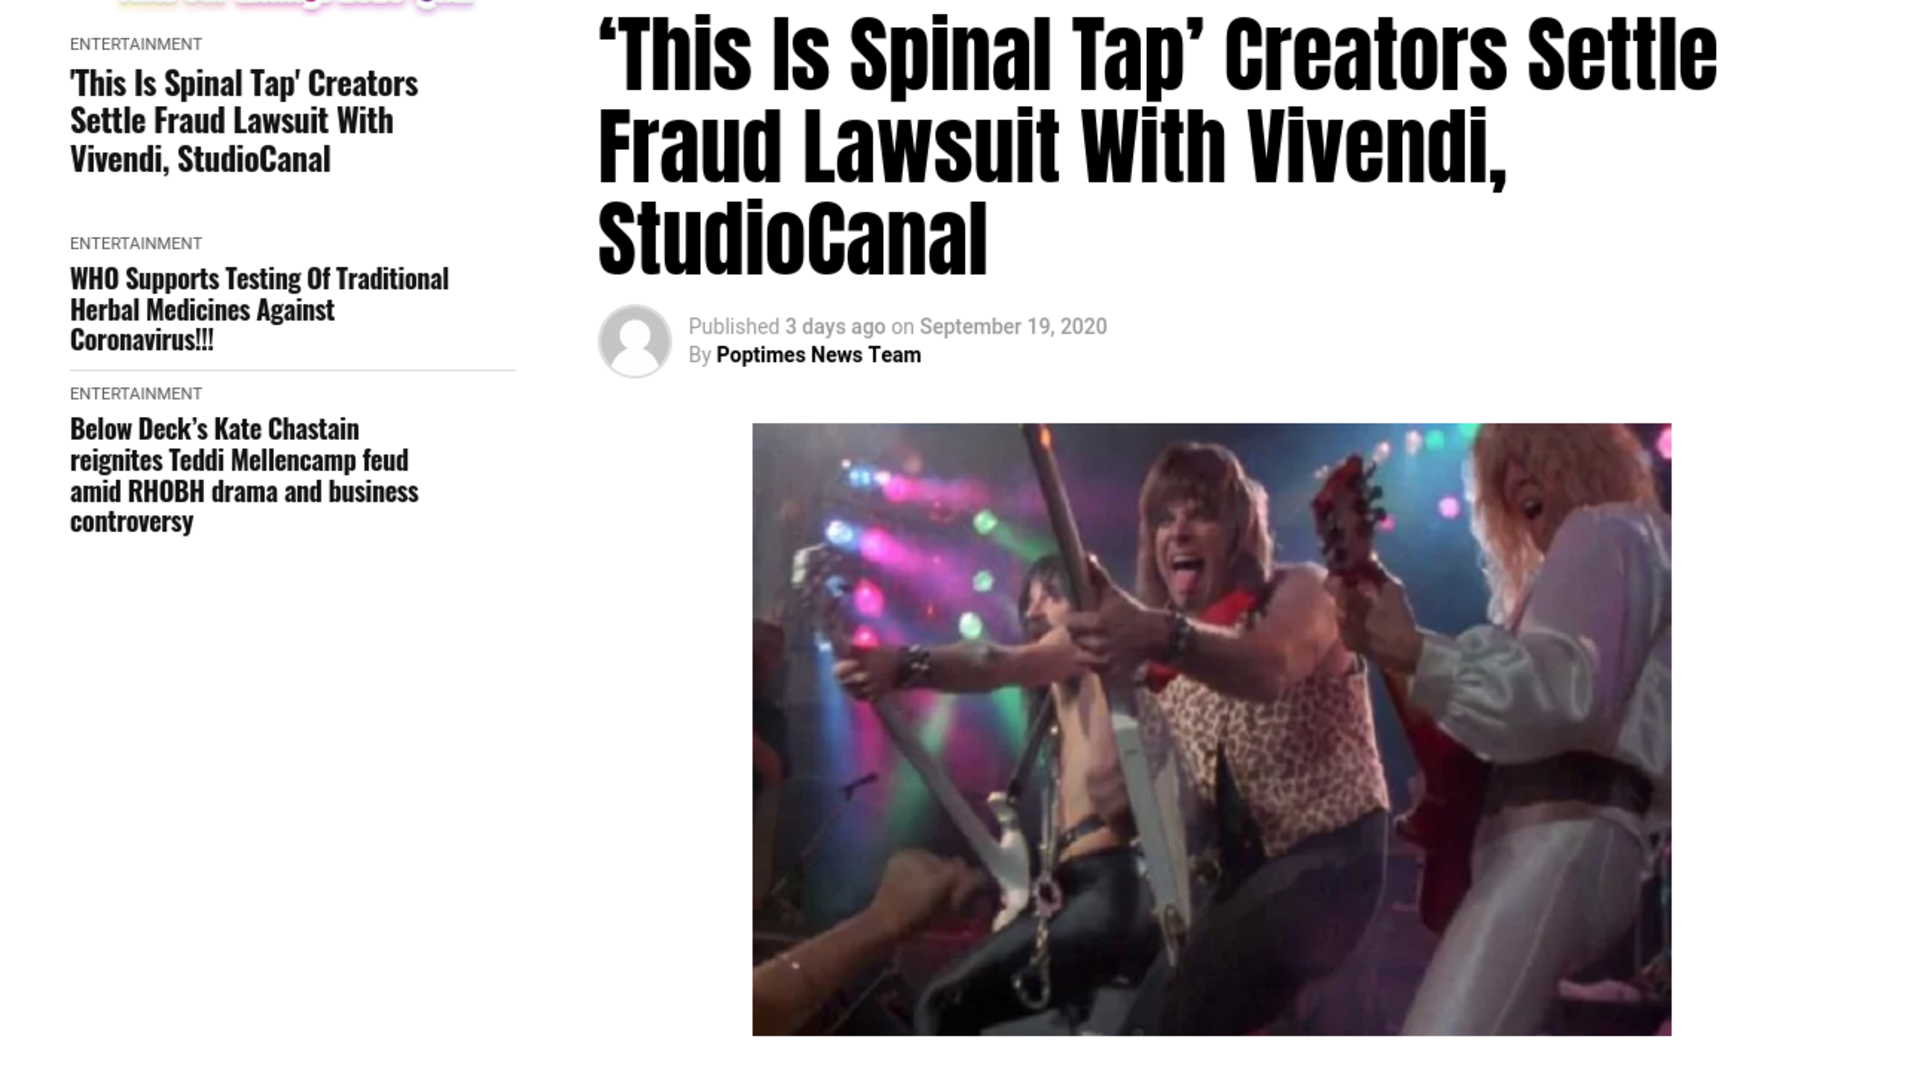 Fairness Rocks News 'This Is Spinal Tap' Creators Settle Fraud Lawsuit With Vivendi, StudioCanal